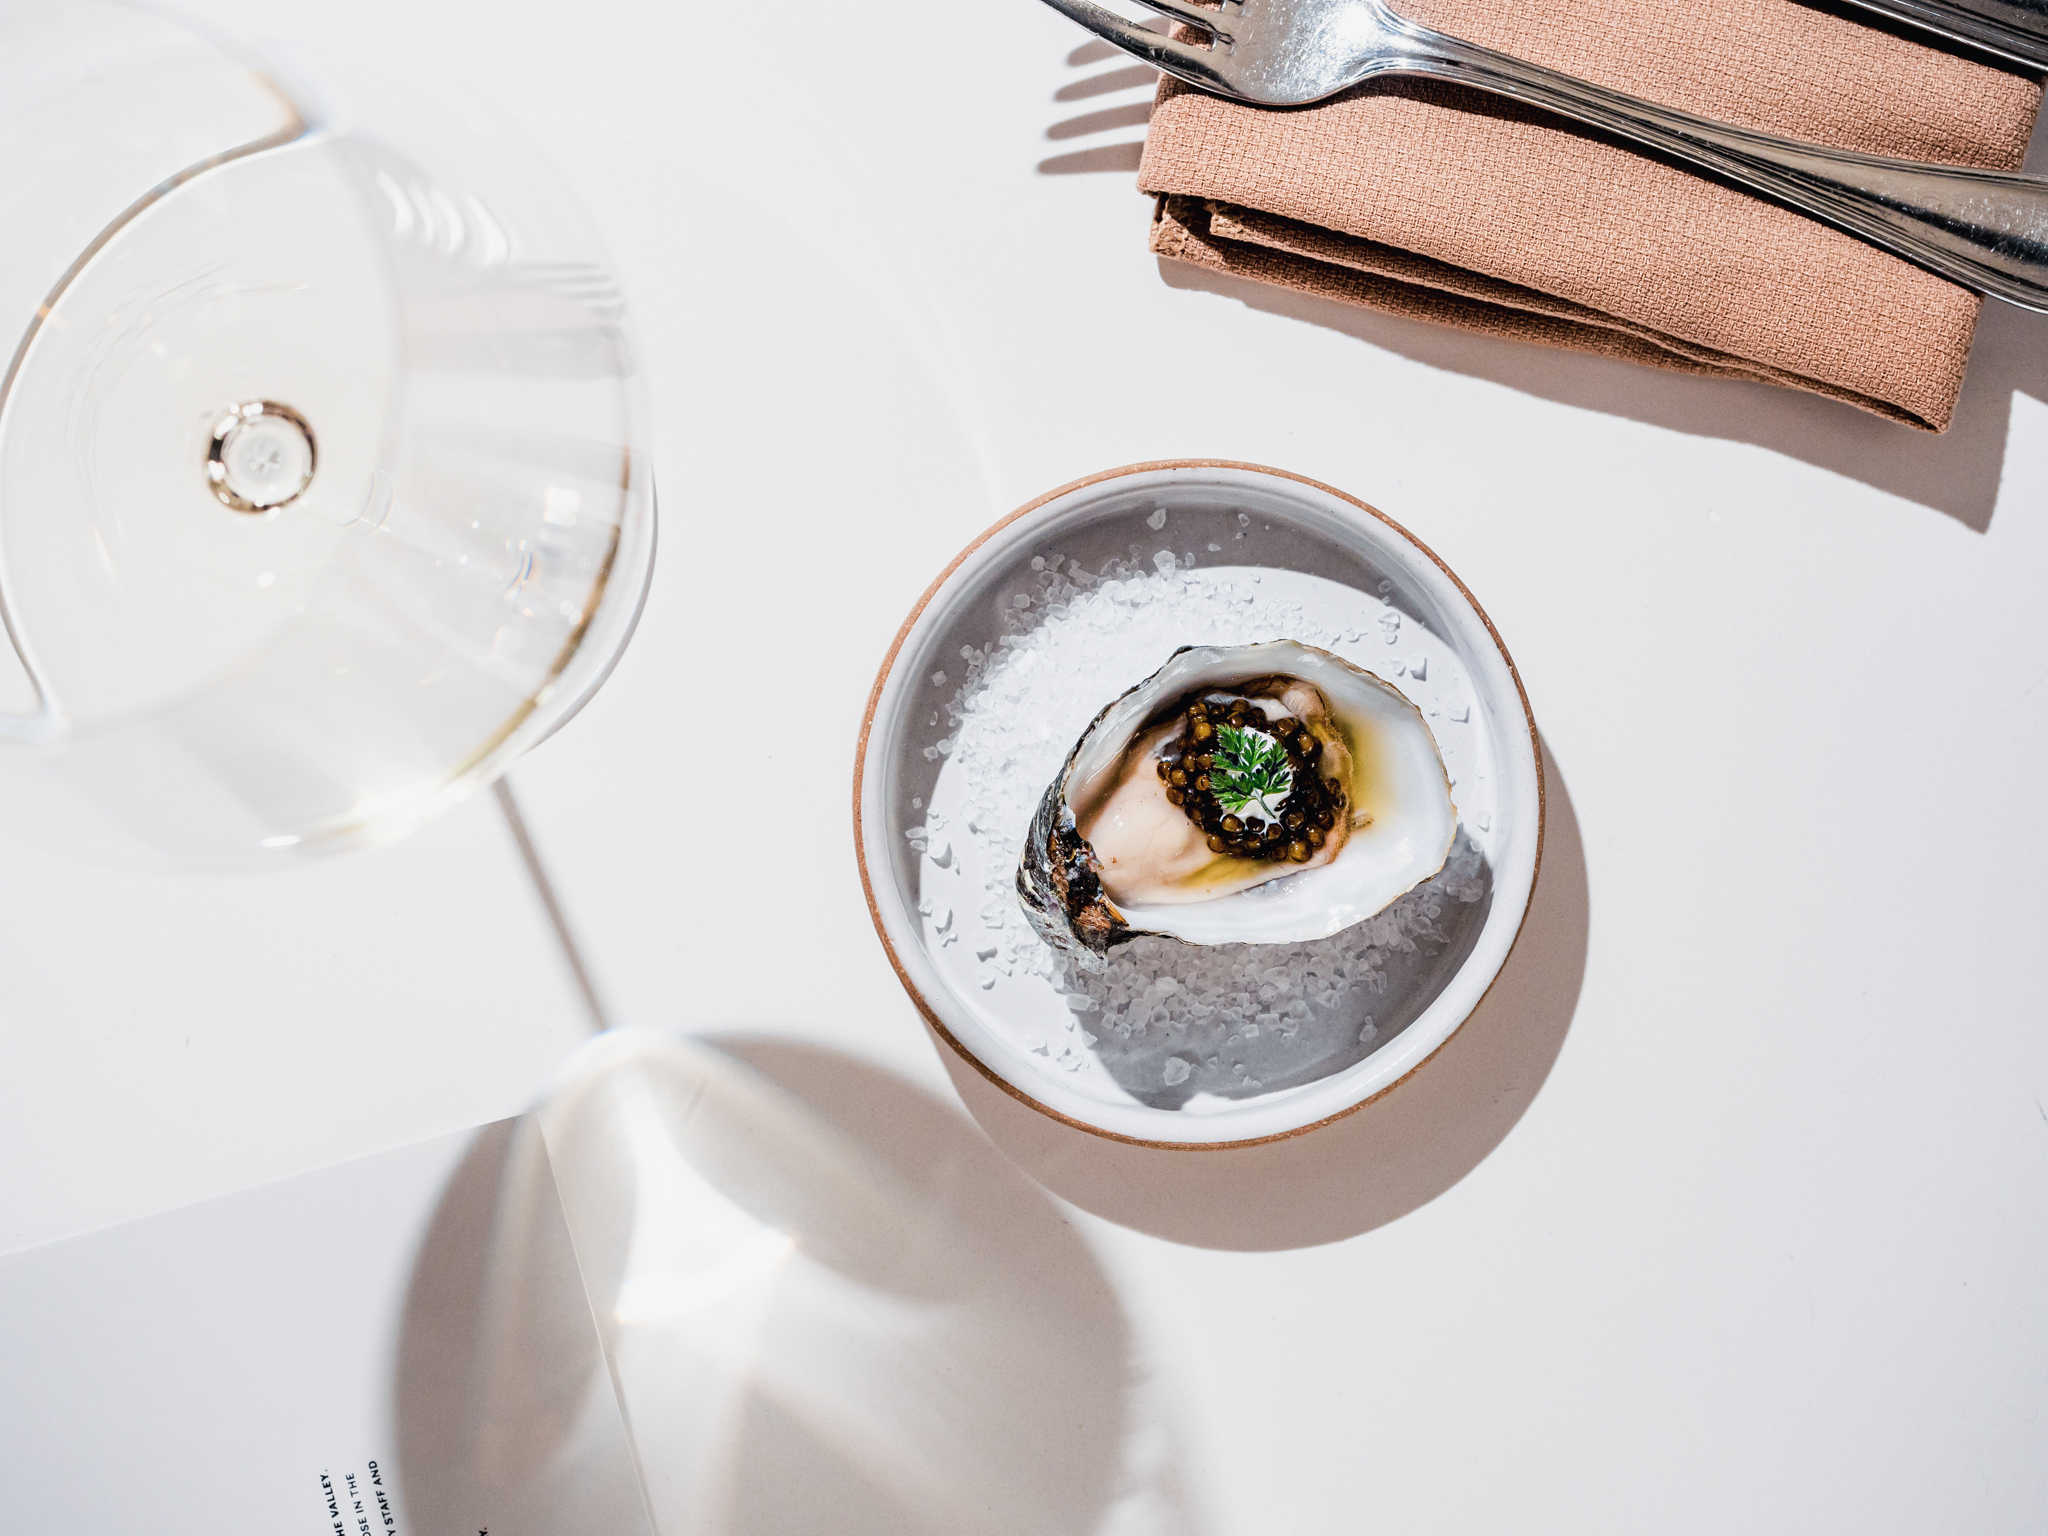 A single oyster topped with caviar and a pale white wine in a glass next to the plate.